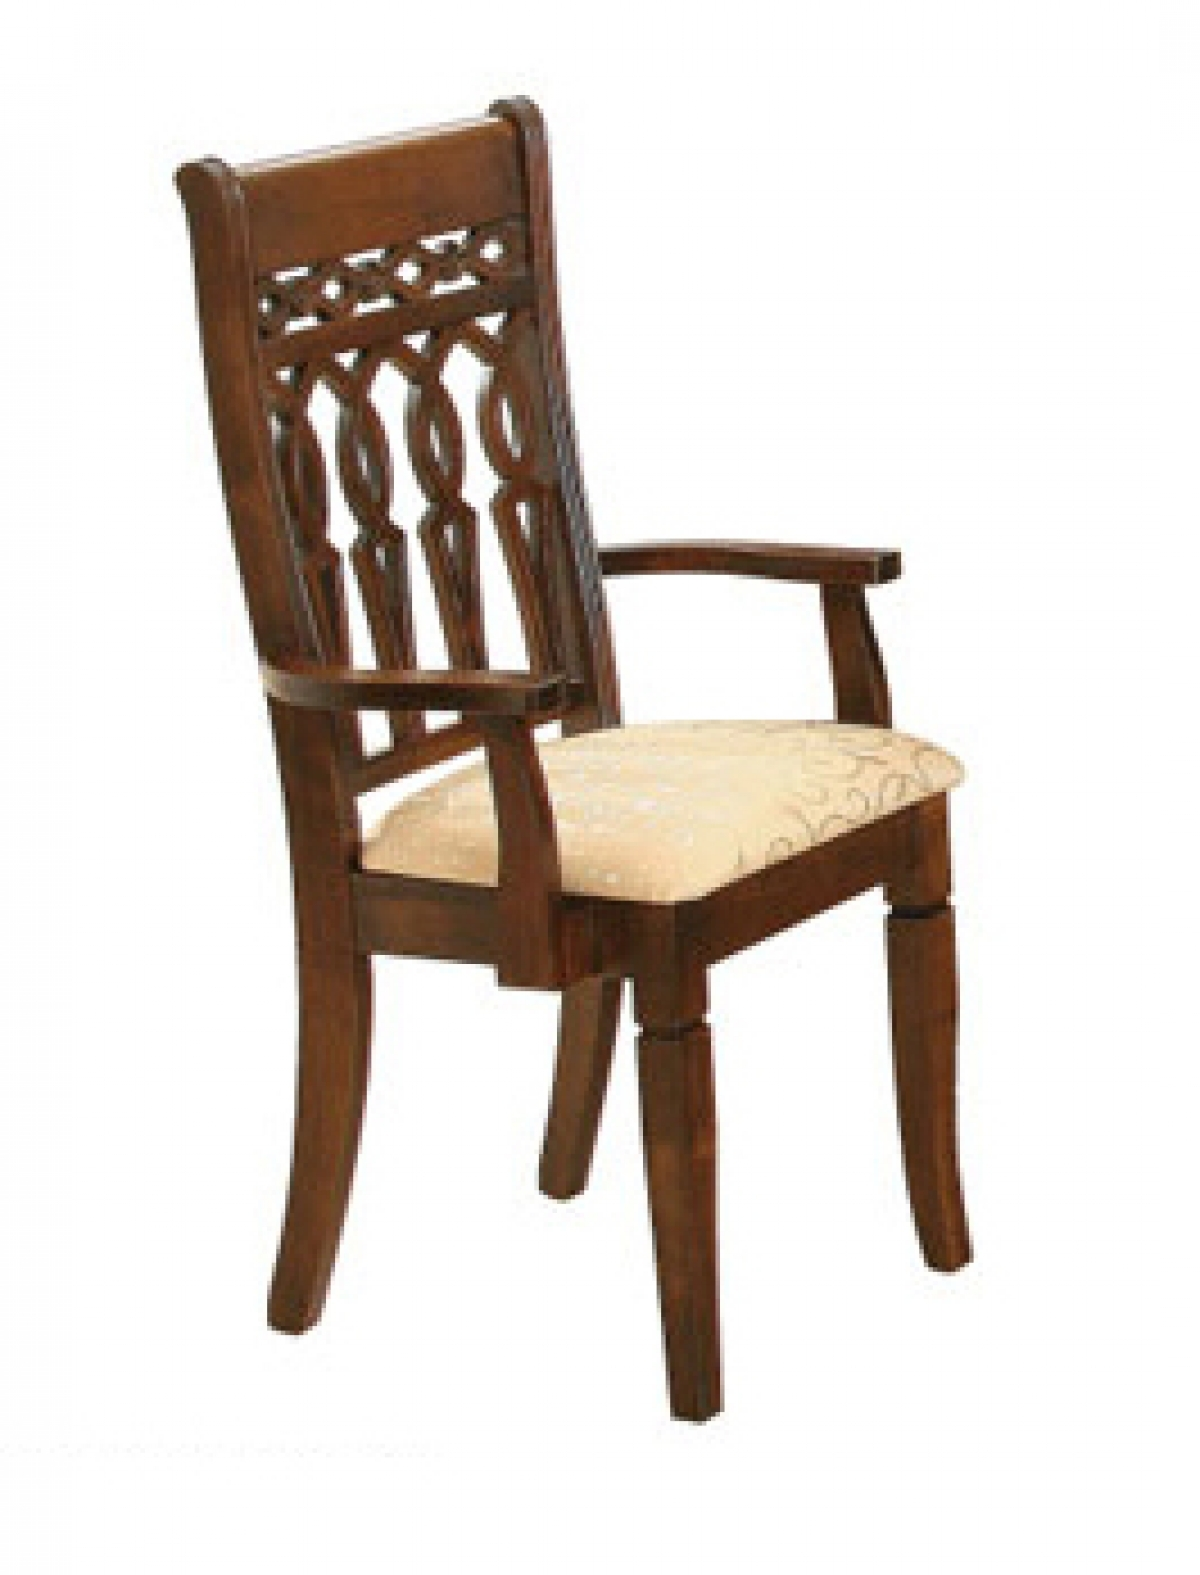 330cs Wooden Dining Chair With Arm Rest Rym Furniture